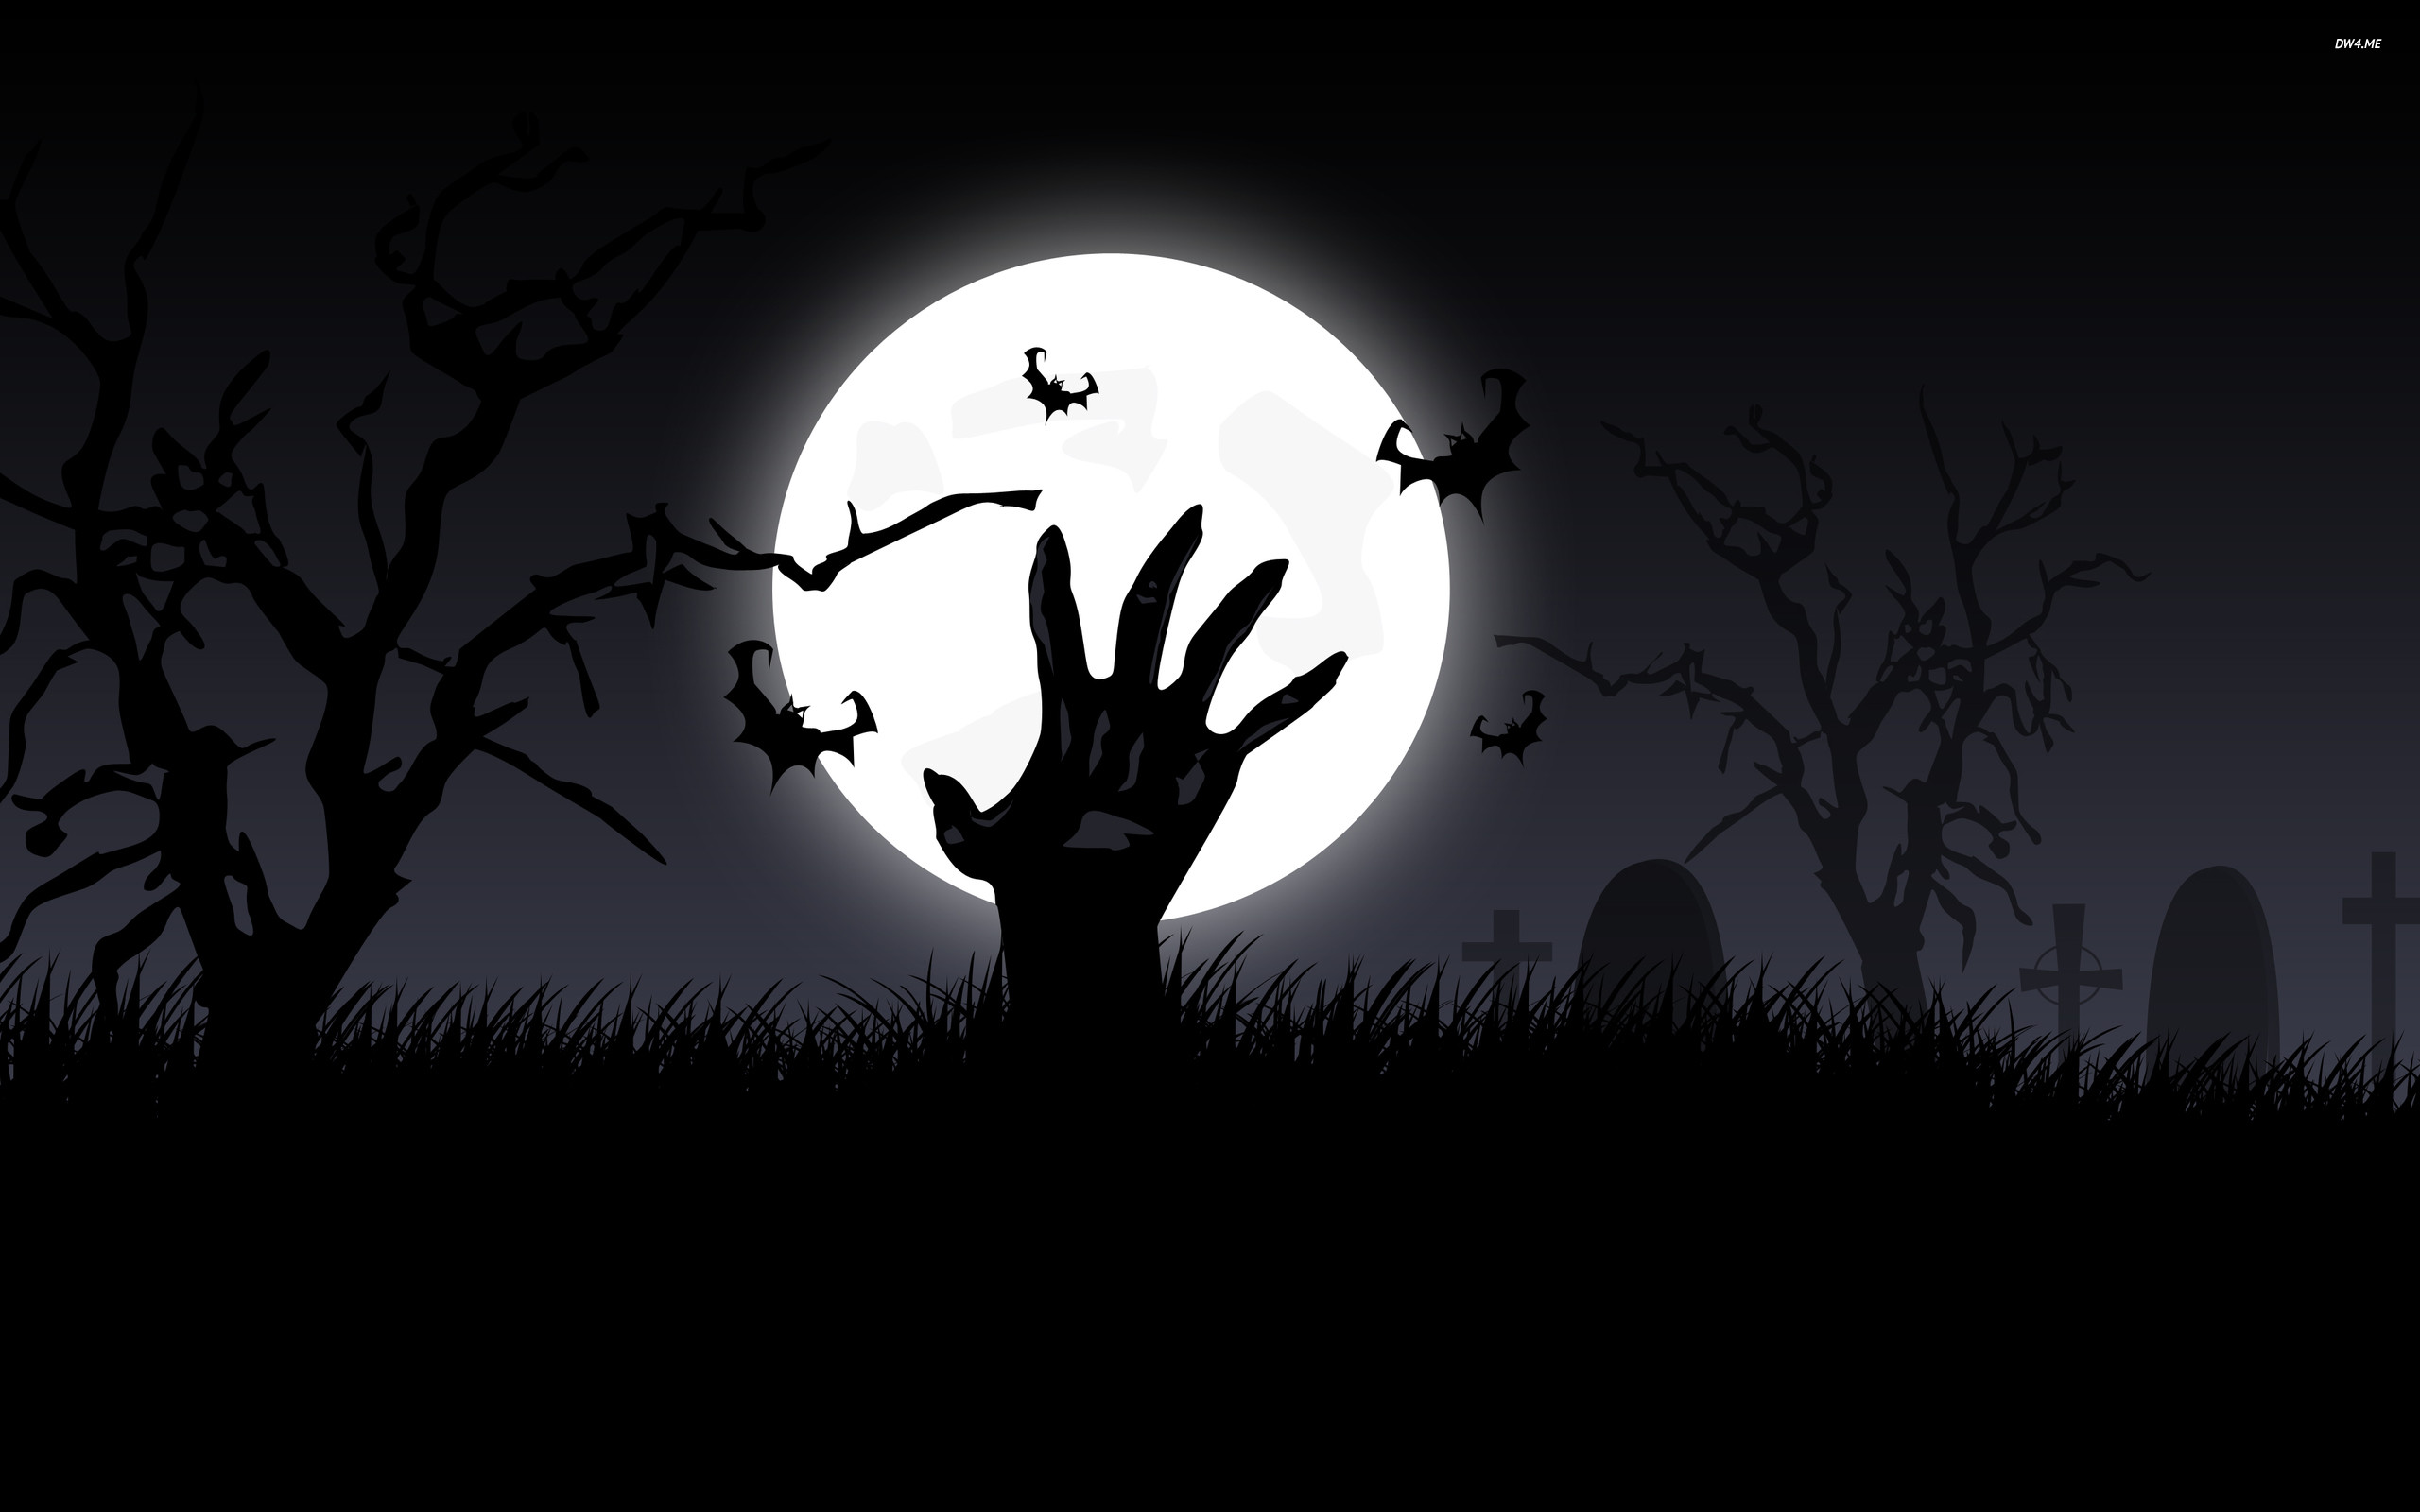 2560x1600 Zombie hand in the moonlight wallpaper - Holiday .